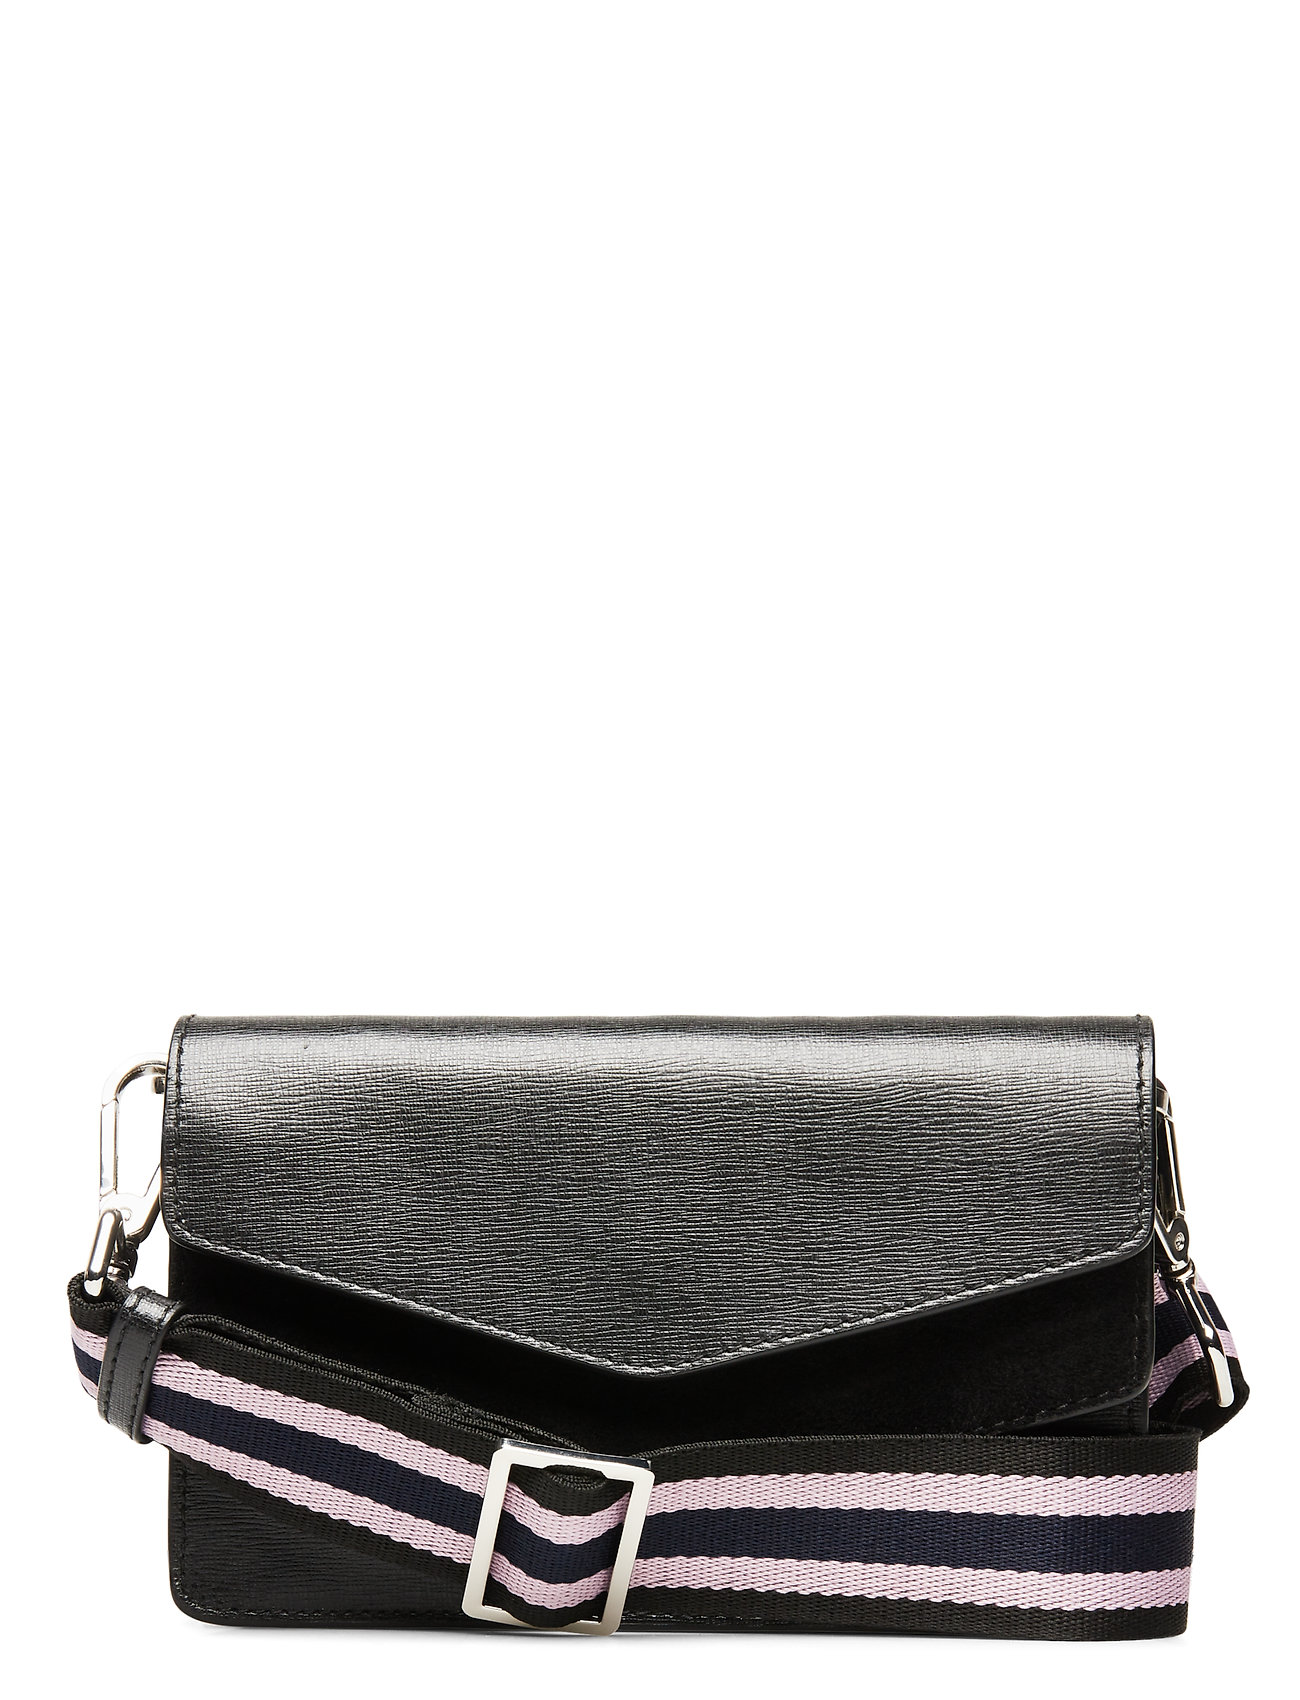 Adax Savona evening bag Norma - BLACK